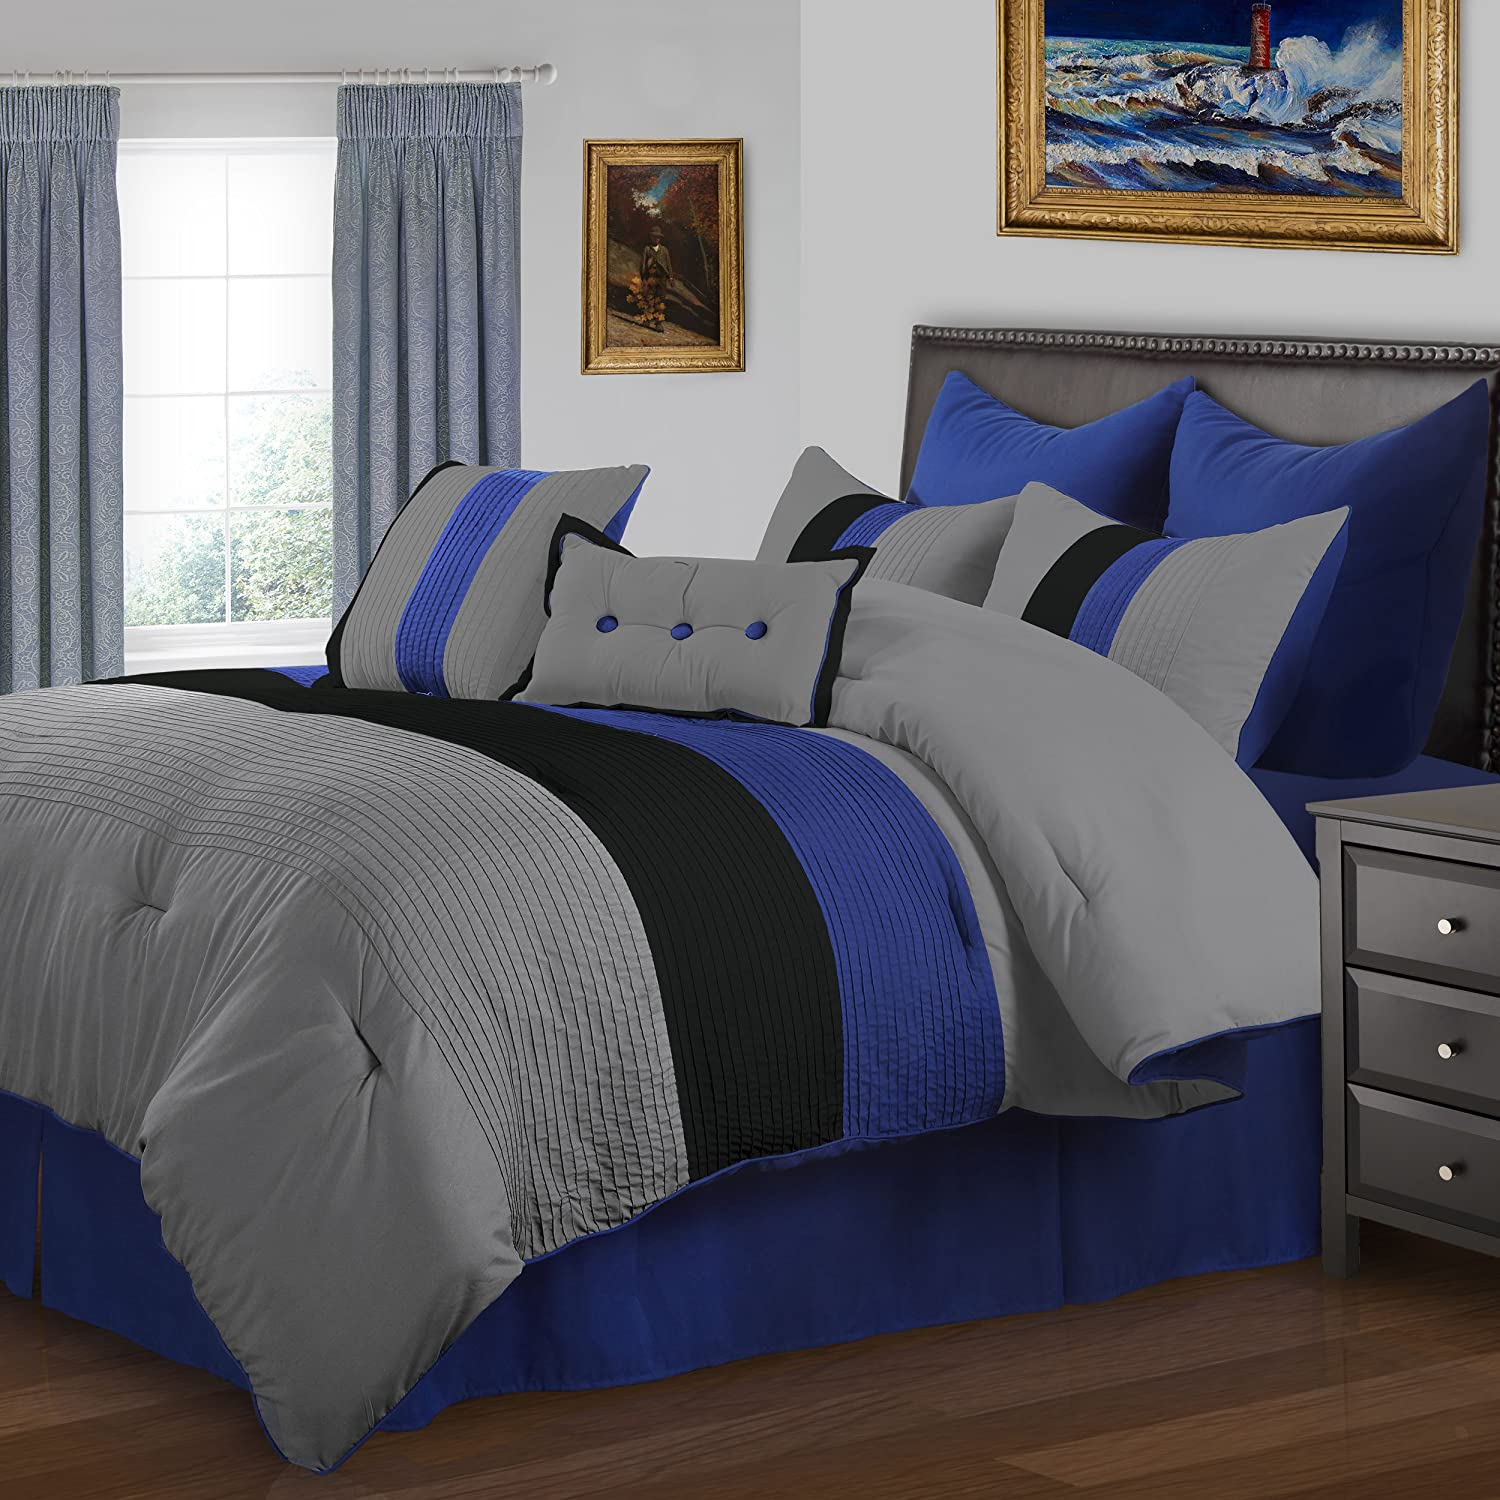 Superior 8-Piece Luxurious Florence Comforter Set Blue FLORENCE 8PC FLBL Beautiful Pleated Bed-in-a-Bag Full